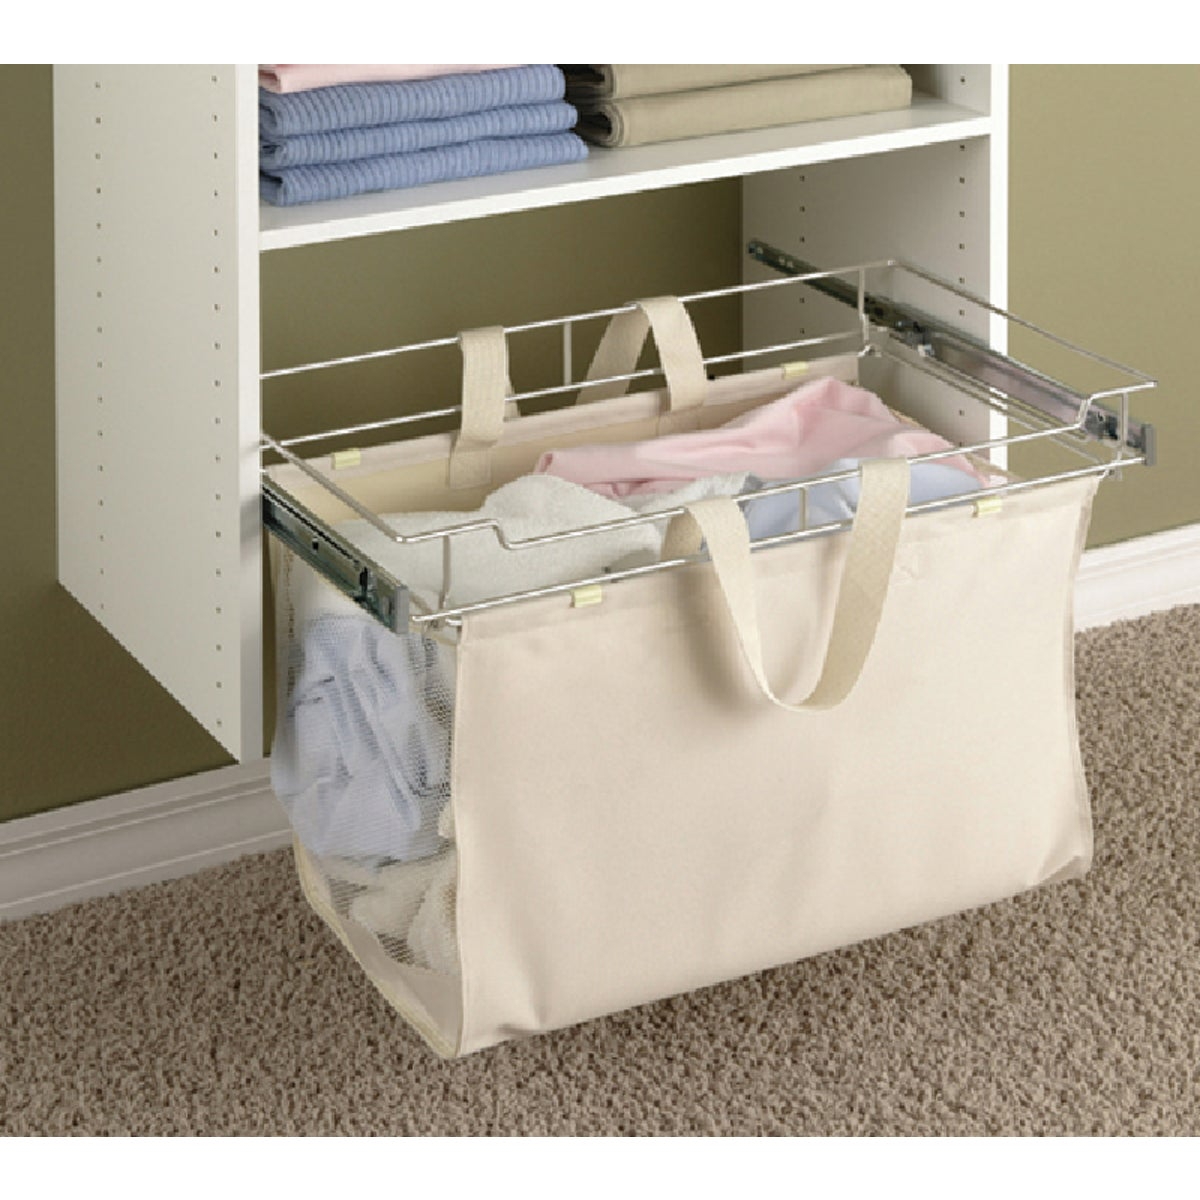 EASY TRACK CLOSET HAMPER - 9200-CH by The Stow Company